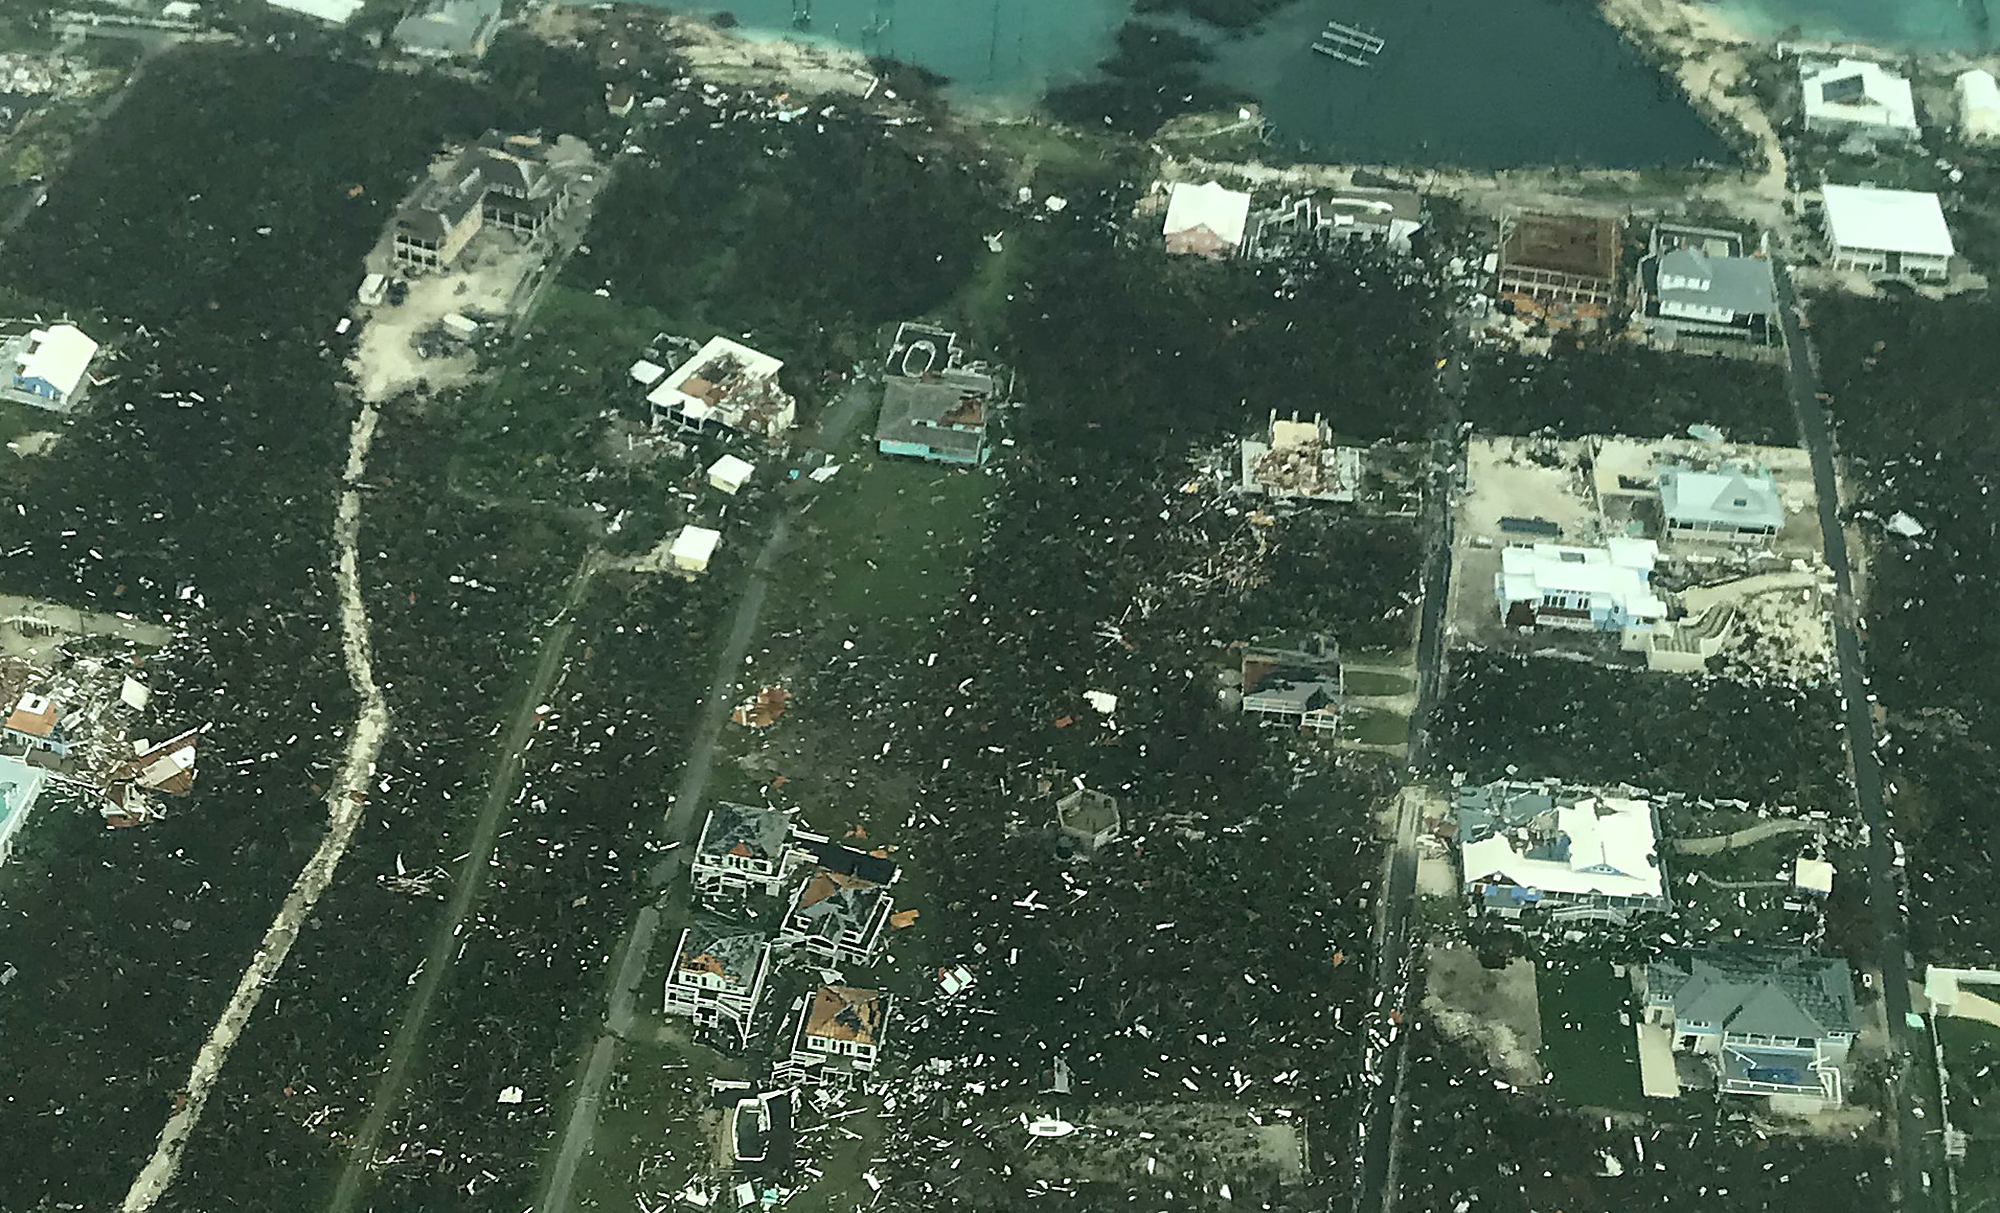 In this handout aerial photo provided by the Head Knowles Foundation, damage is seen from Hurricane Dorian on Abaco Island on September 3, 2019 in the Bahamas.